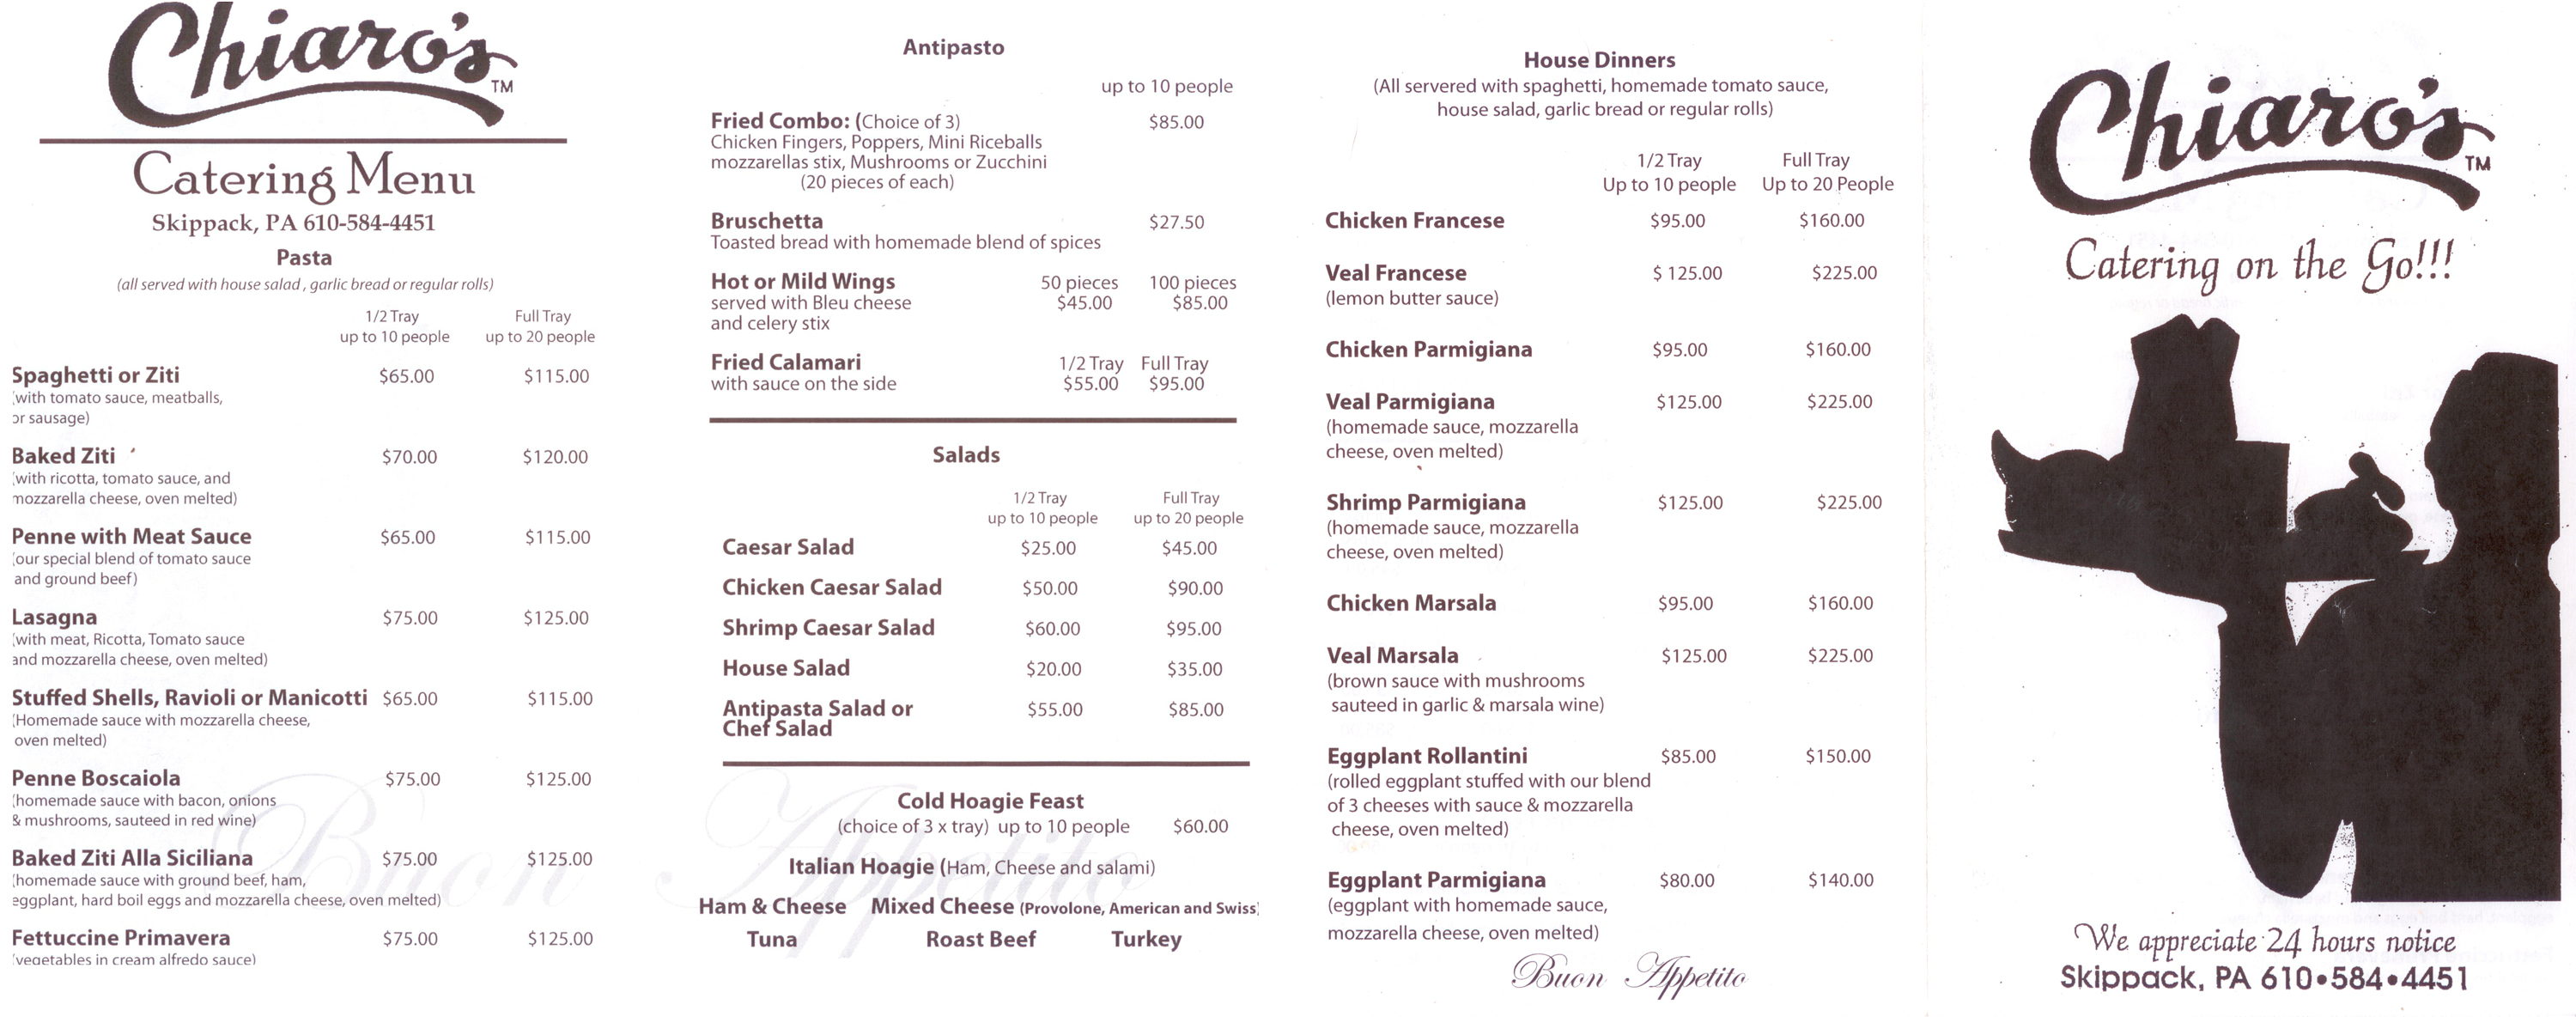 Chiaros Catering Menu